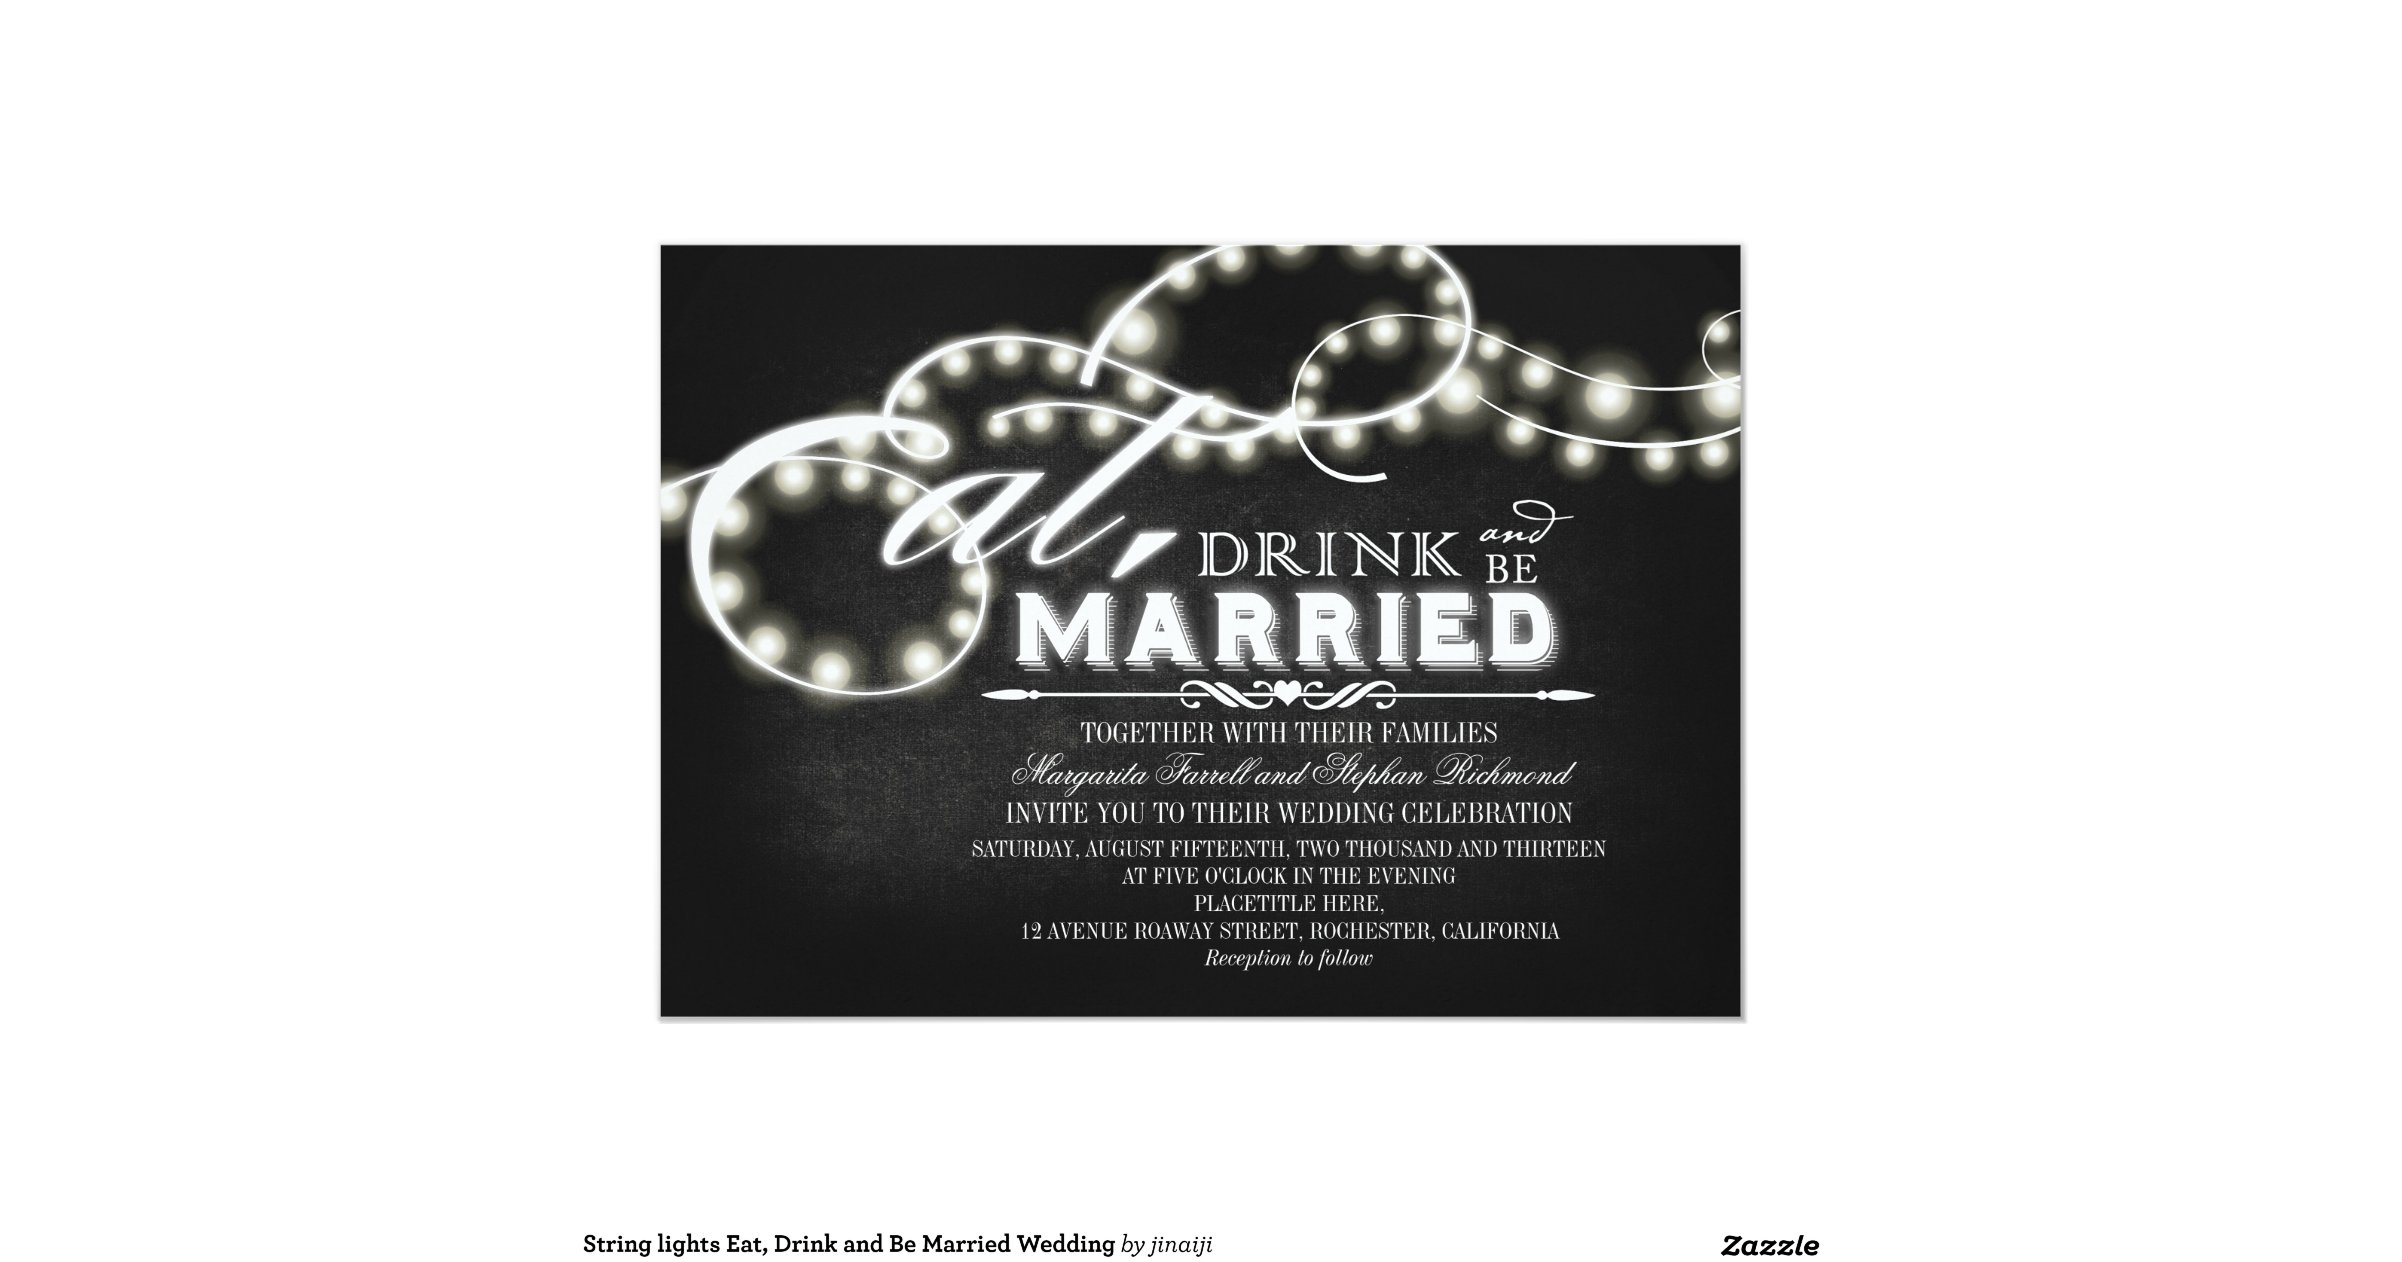 Wedding Invitations Eat Drink And Be Married: String_lights_eat_drink_and_be_married_wedding_invitation